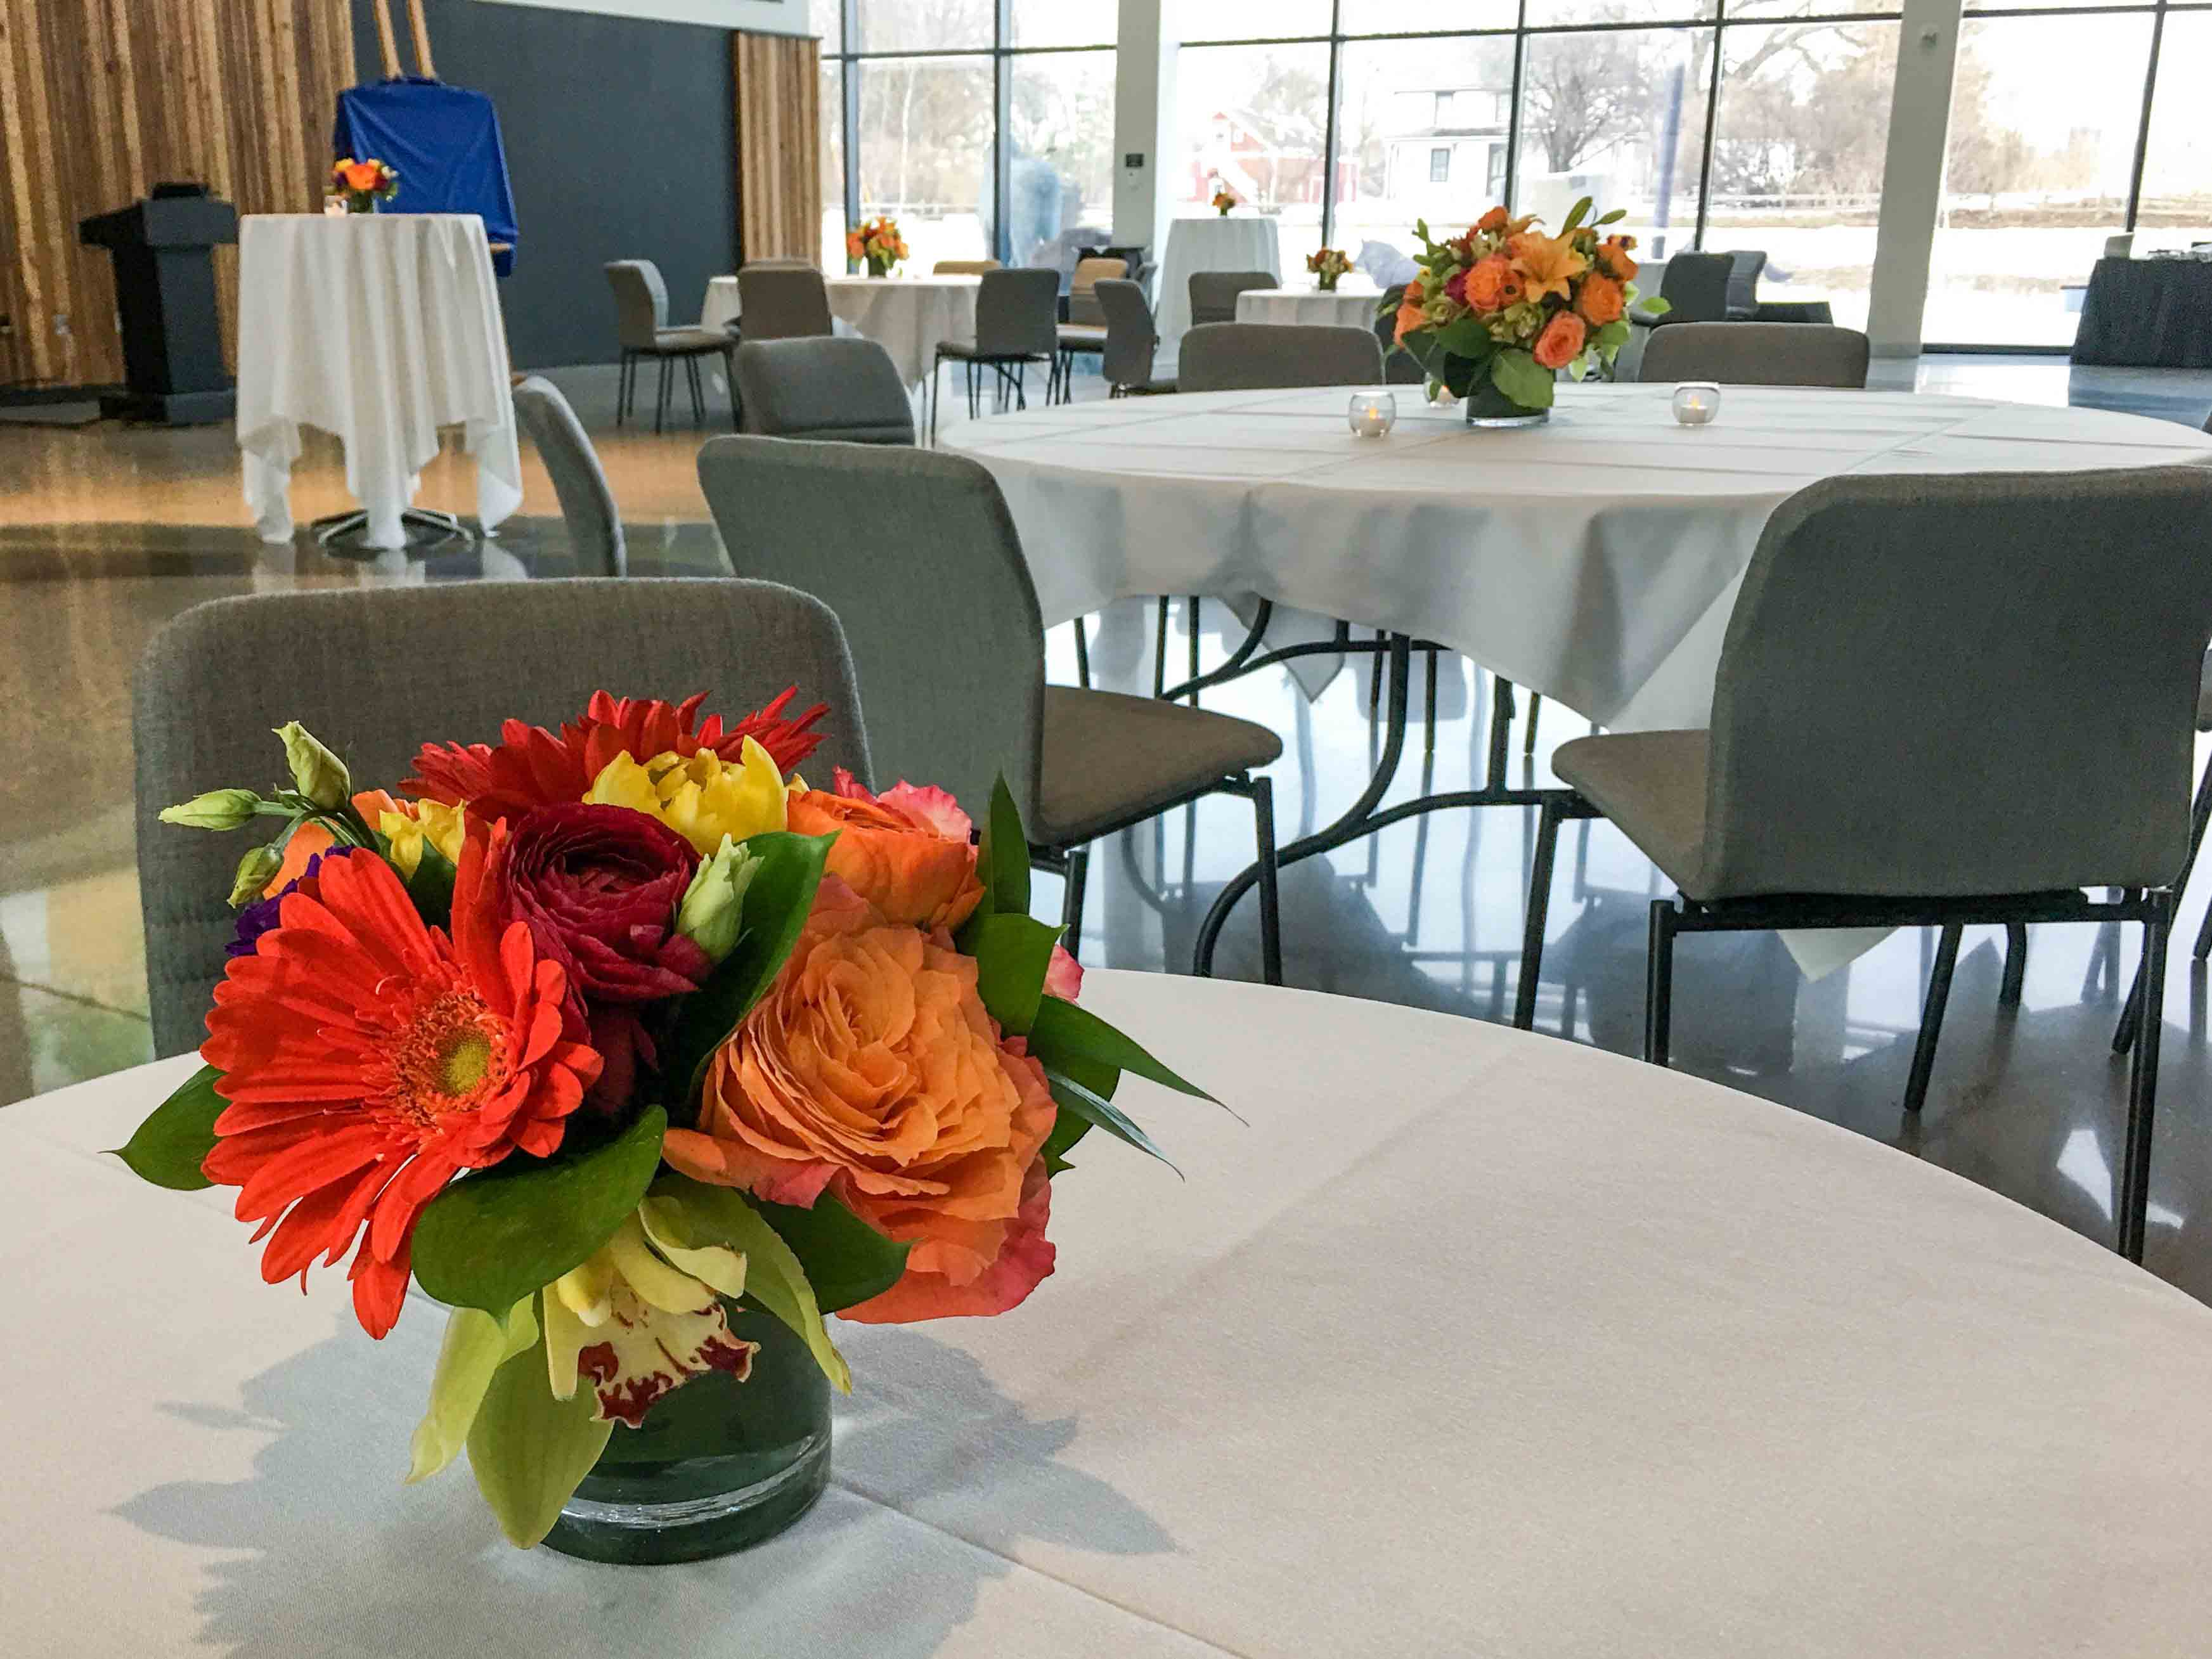 Bright orange, red and yellow flower centerpiece on table with white tableclot